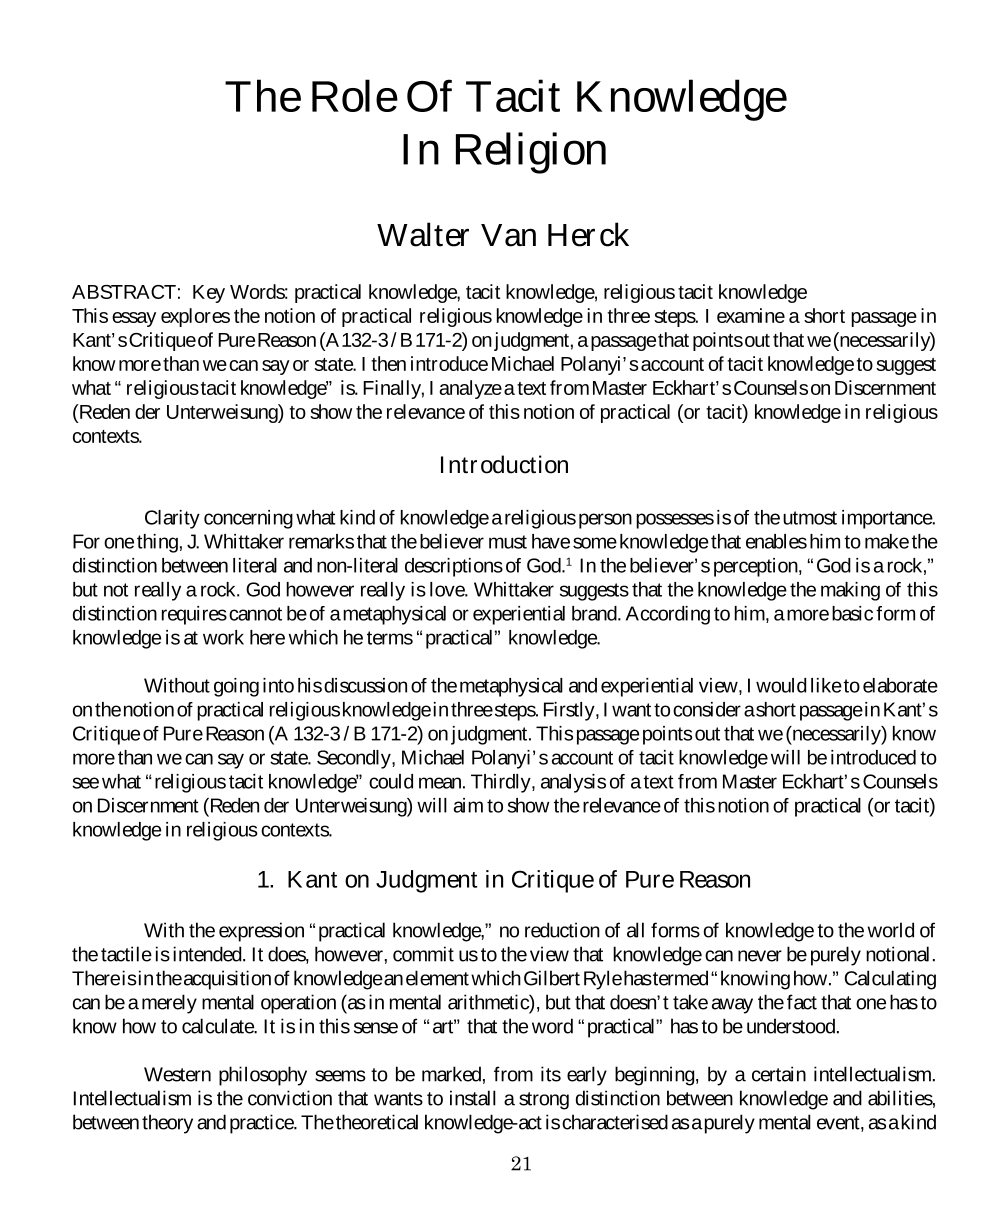 The Role Of Tacit Knowledge In Religion - Walter Van Herck